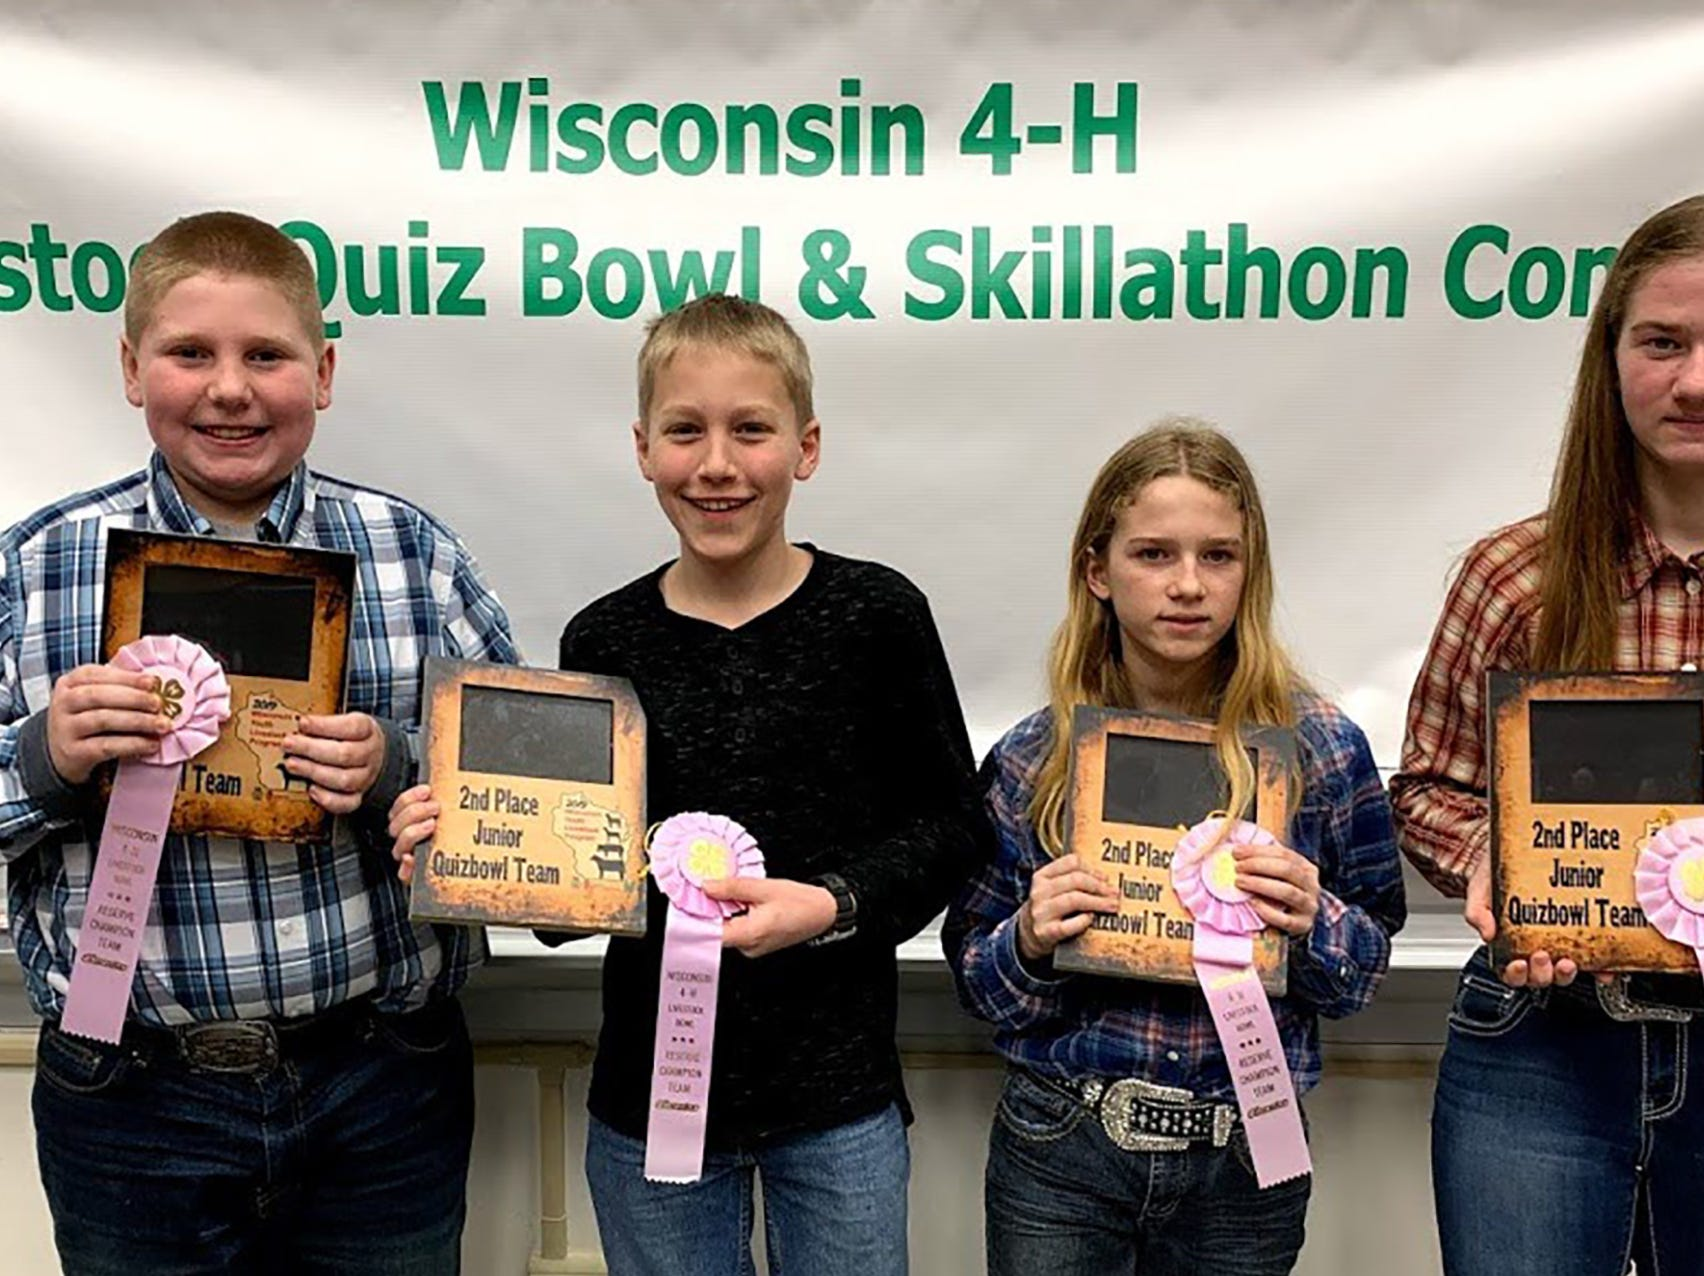 The second place Junior Quiz Bowl team from Marathon County consisted of members (from left)  Mason Heise, Logan Witberler, Alexa Leonard, Alison Leonard.